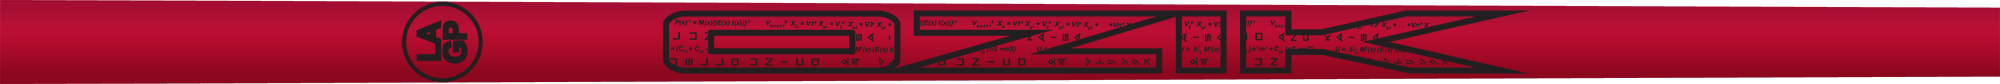 Ozik White Tie: Red Black Satin - Wood 50 S